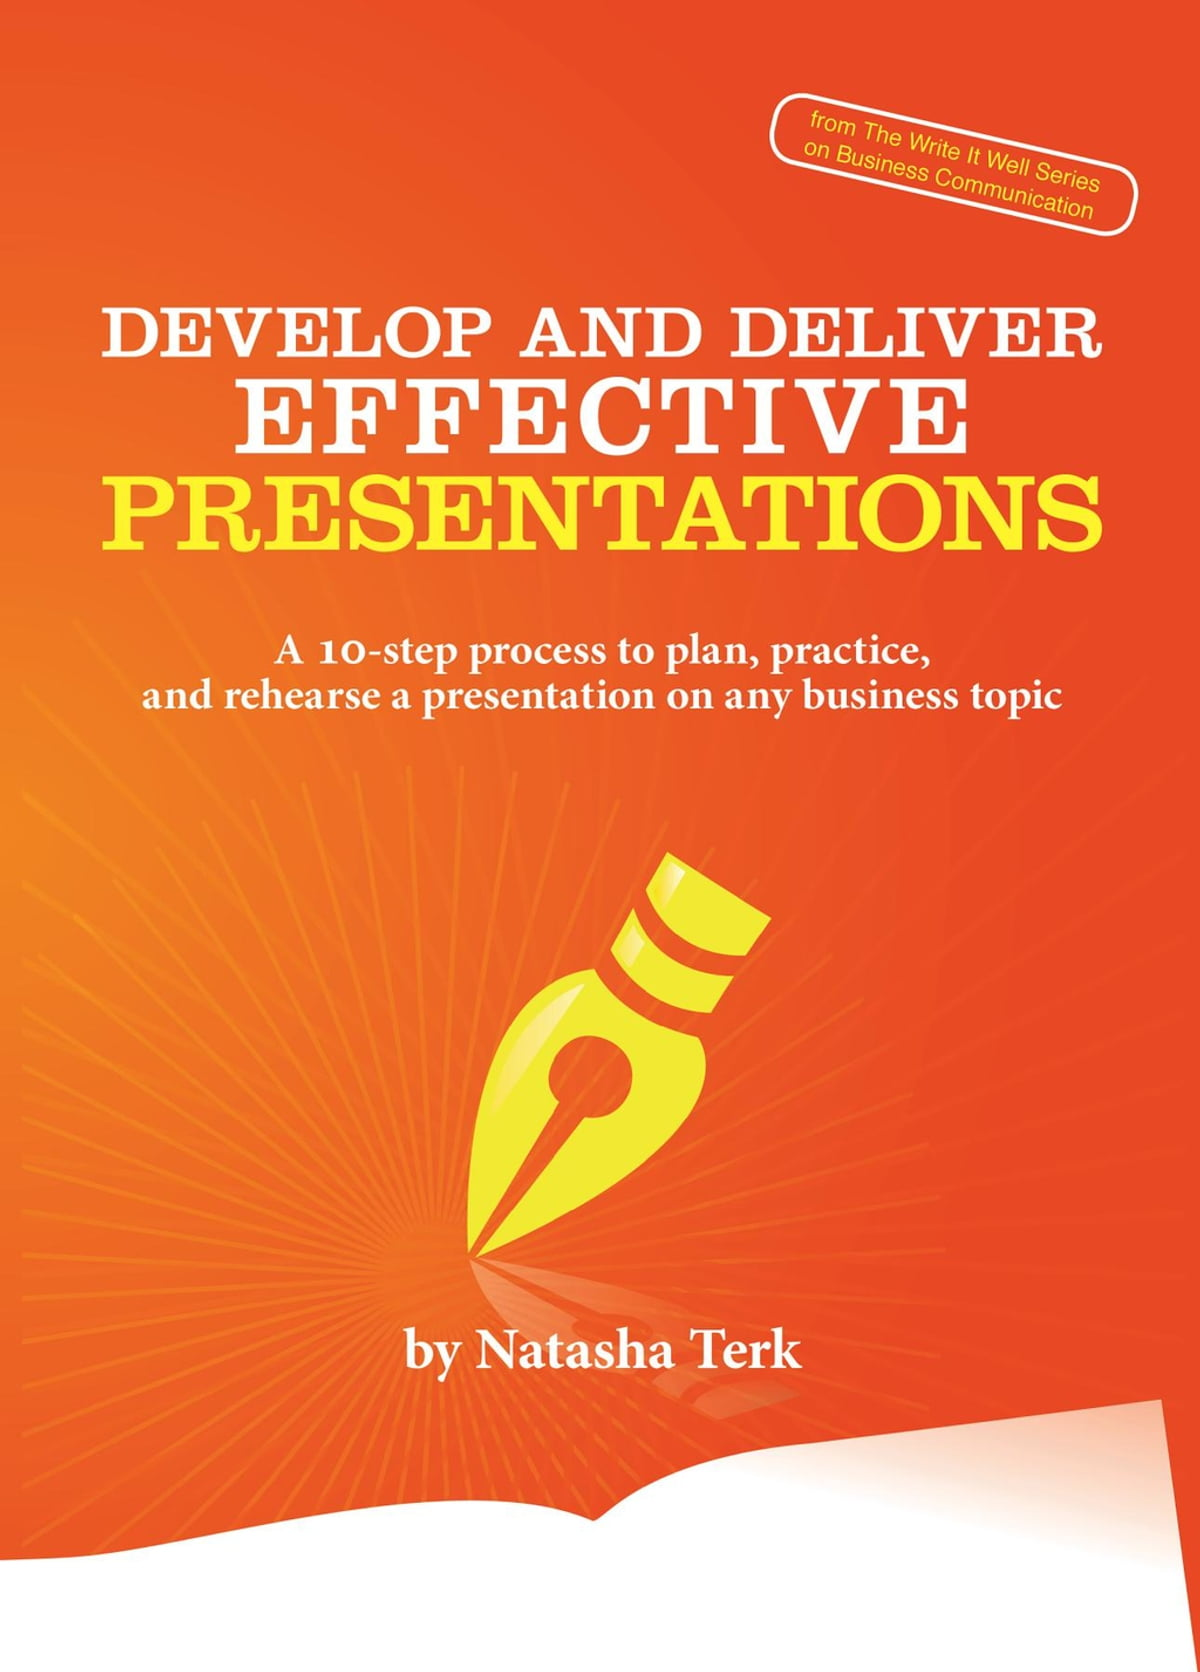 develop and deliver effective presentations a step process to develop and deliver effective presentations a 10 step process to plan practice and rehearse a presentation on any business topic ebook by natasha terk